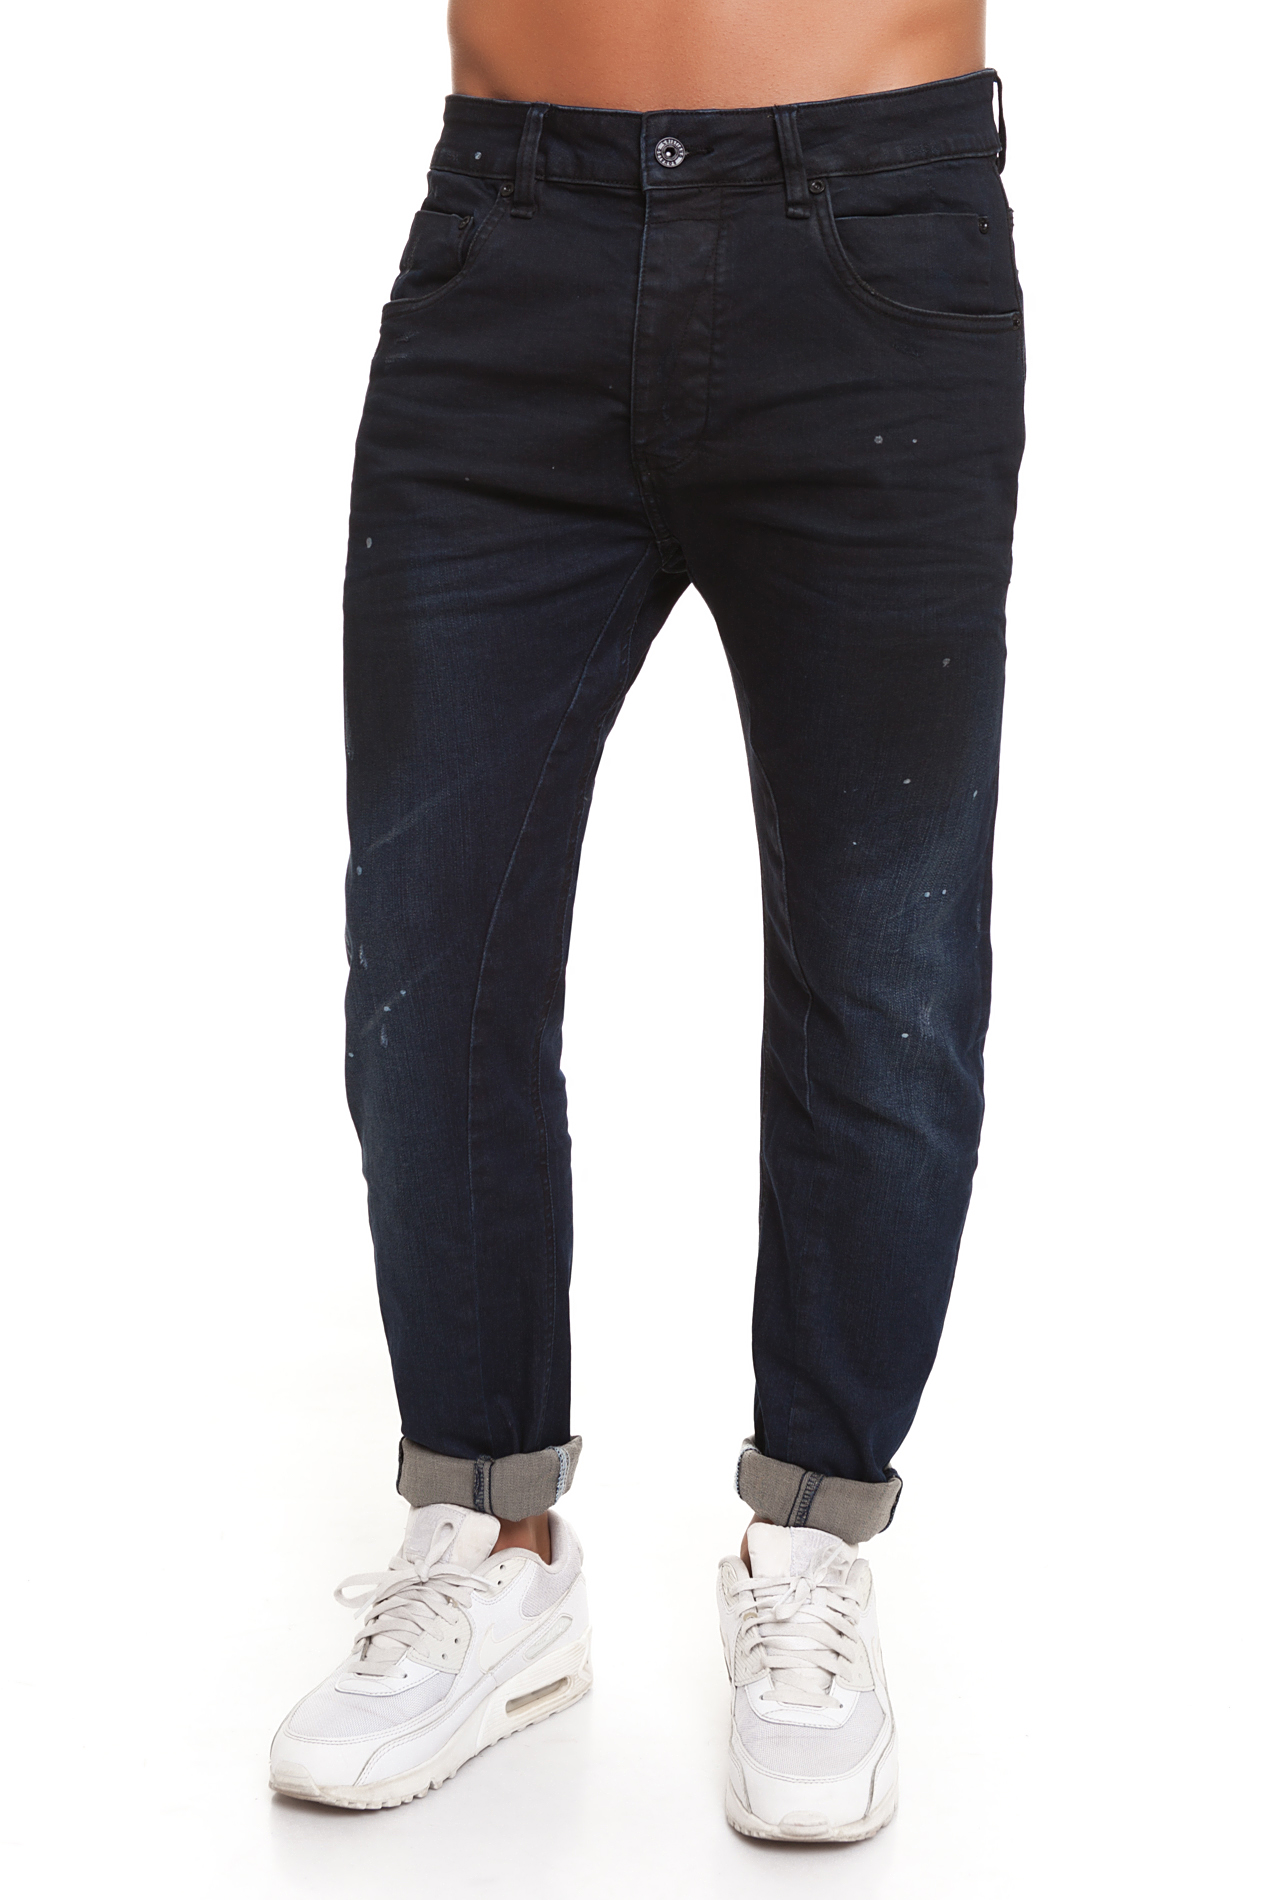 CR7 Jeans For Men Dark Blue Jeans Casual Straight Casual With Pockets CRD044A